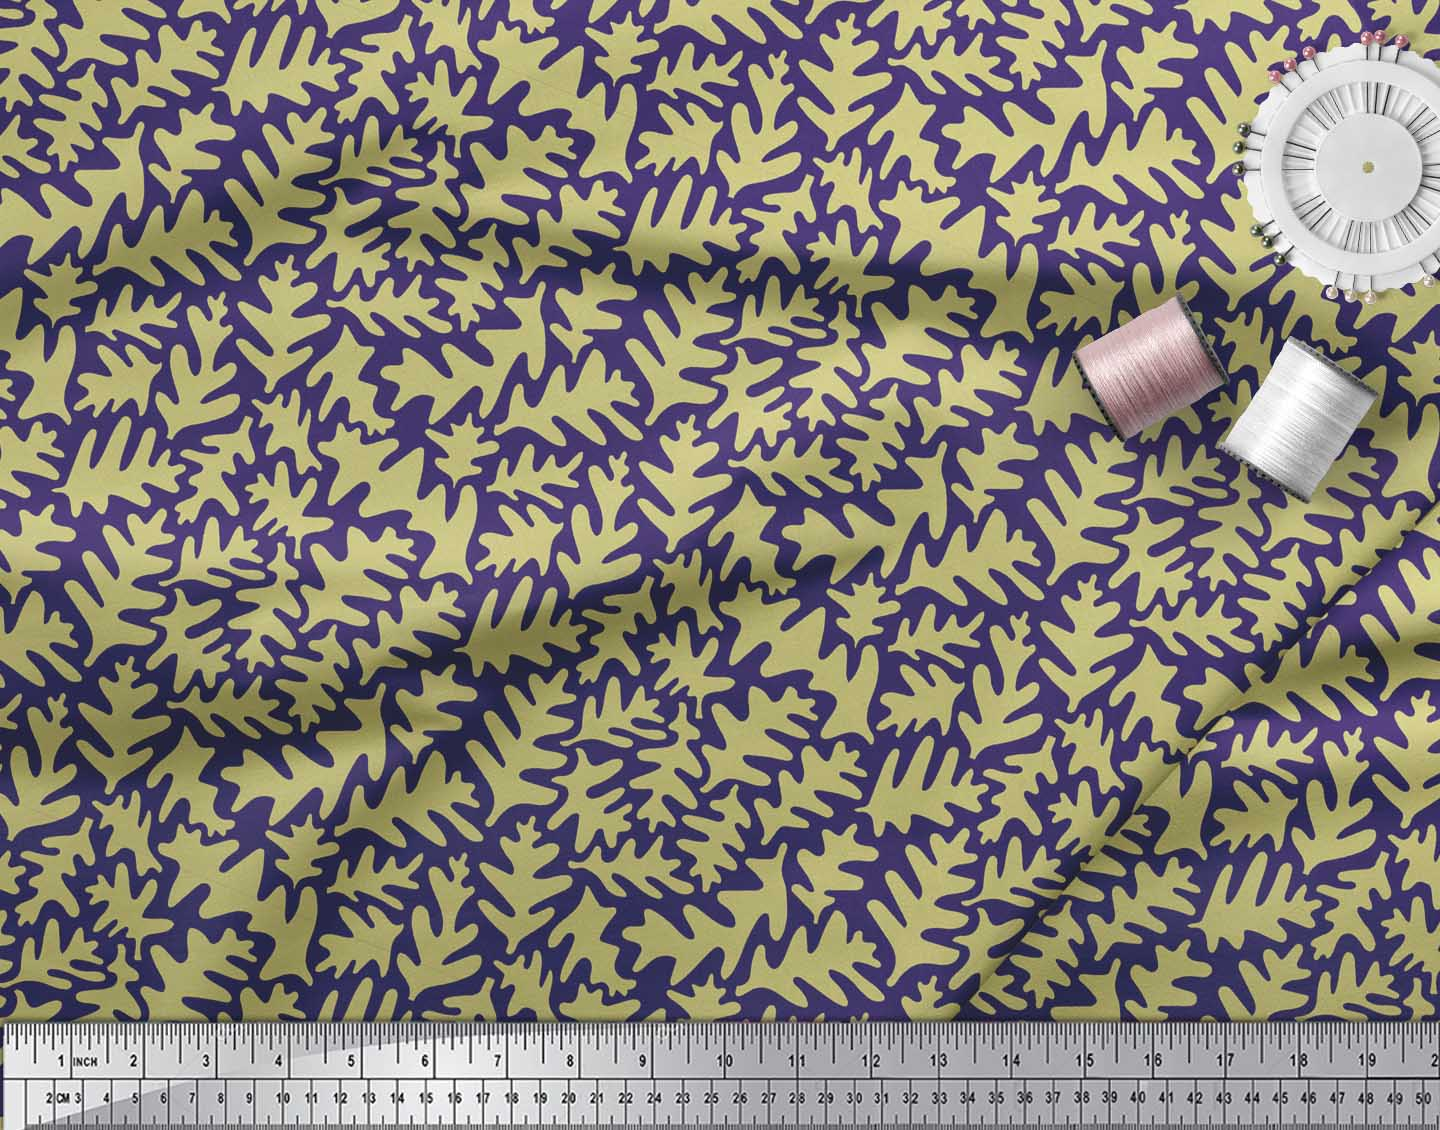 Soimoi-Blue-Cotton-Poplin-Fabric-Leaves-Leaves-Print-Fabric-by-the-qzJ thumbnail 4